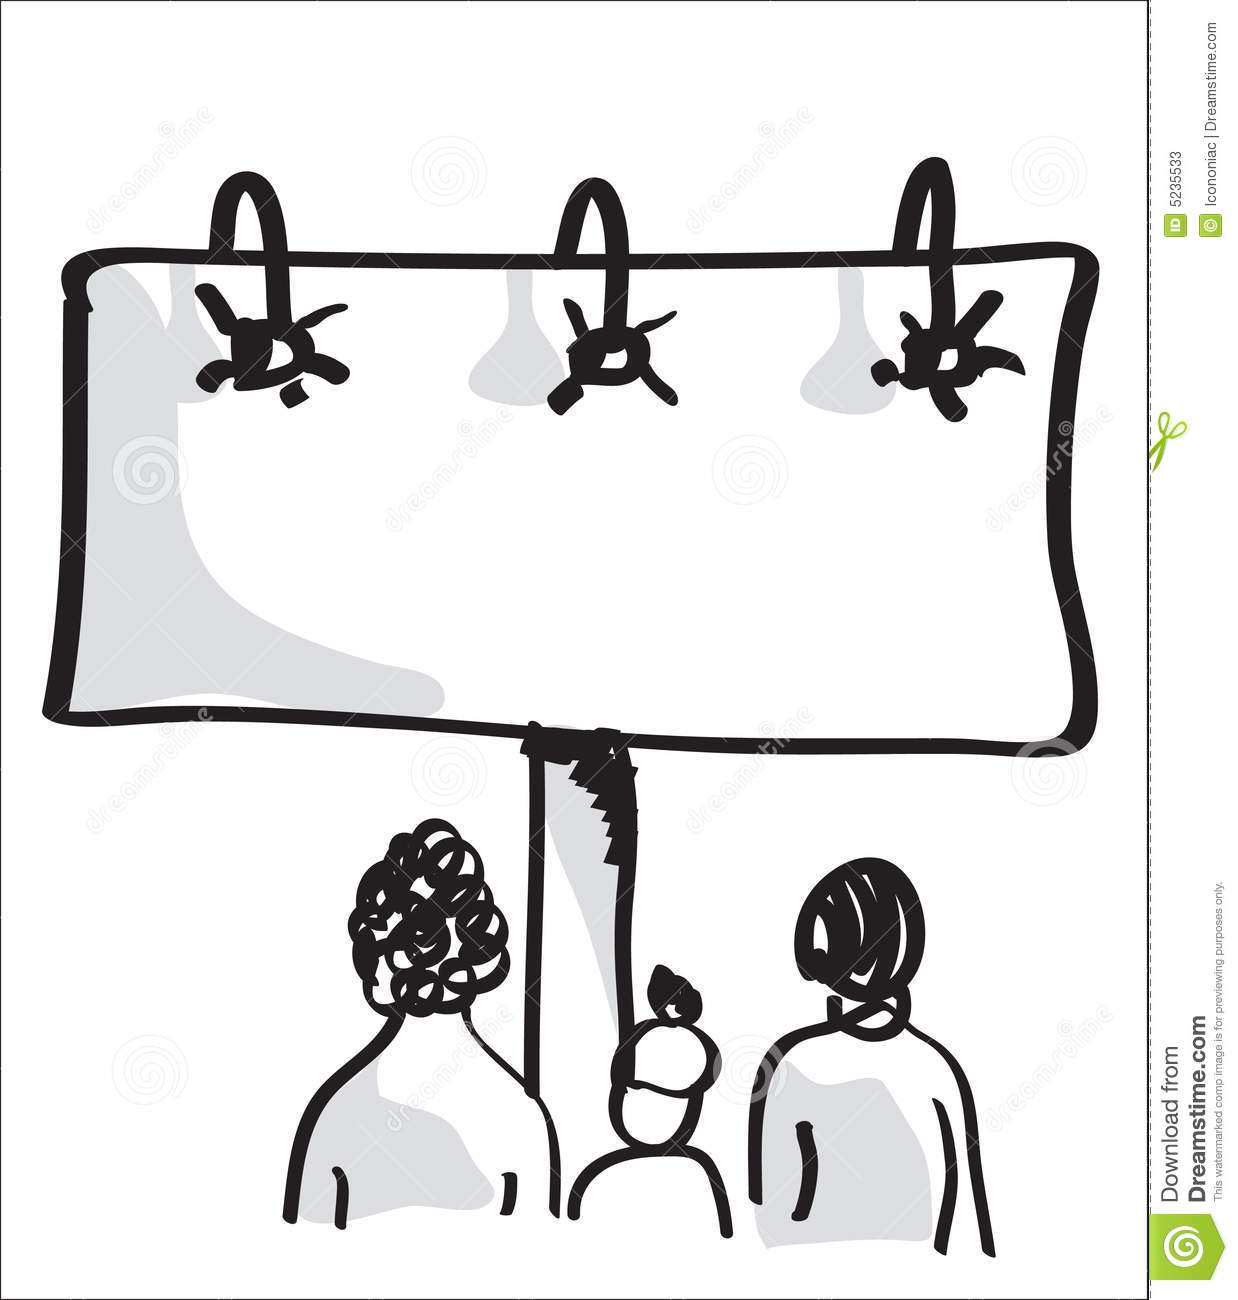 Peoples Looking To A Billboard Advertising. Stock Photos.